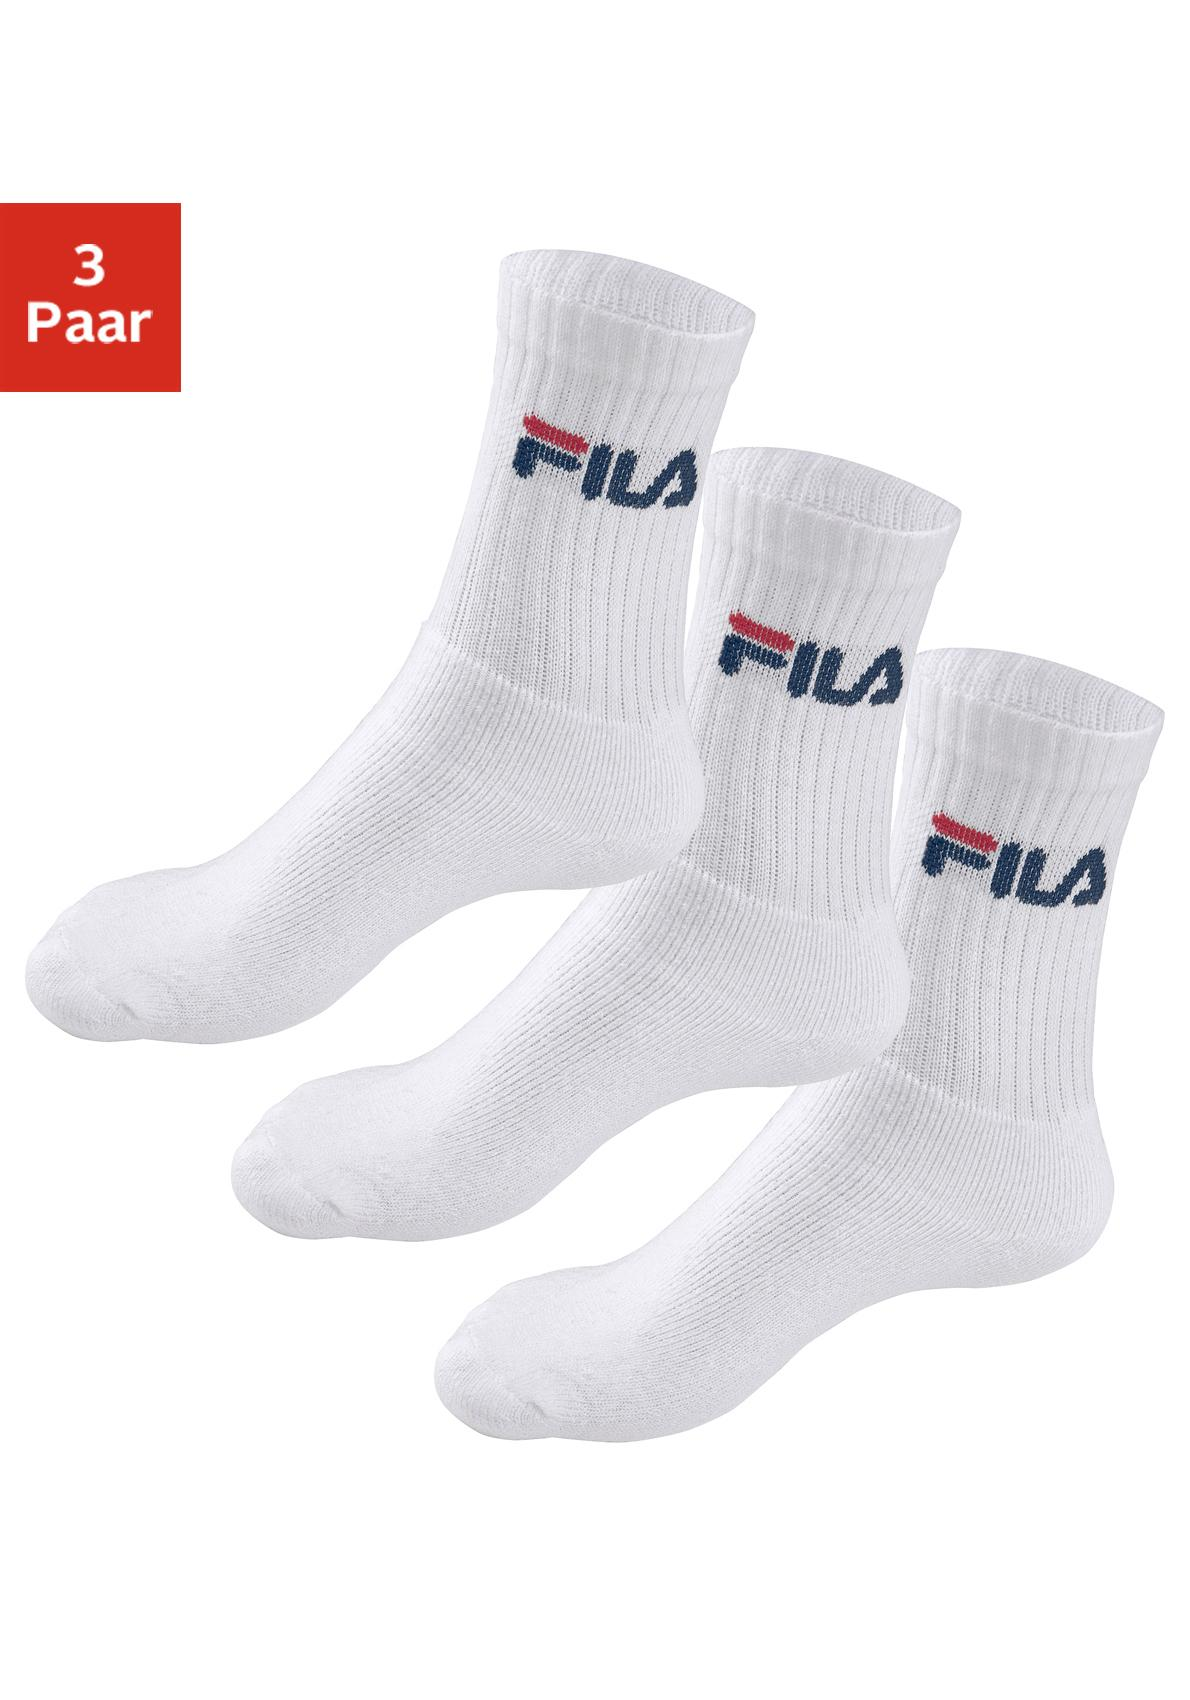 Fila Tennissocken (3 Paar)